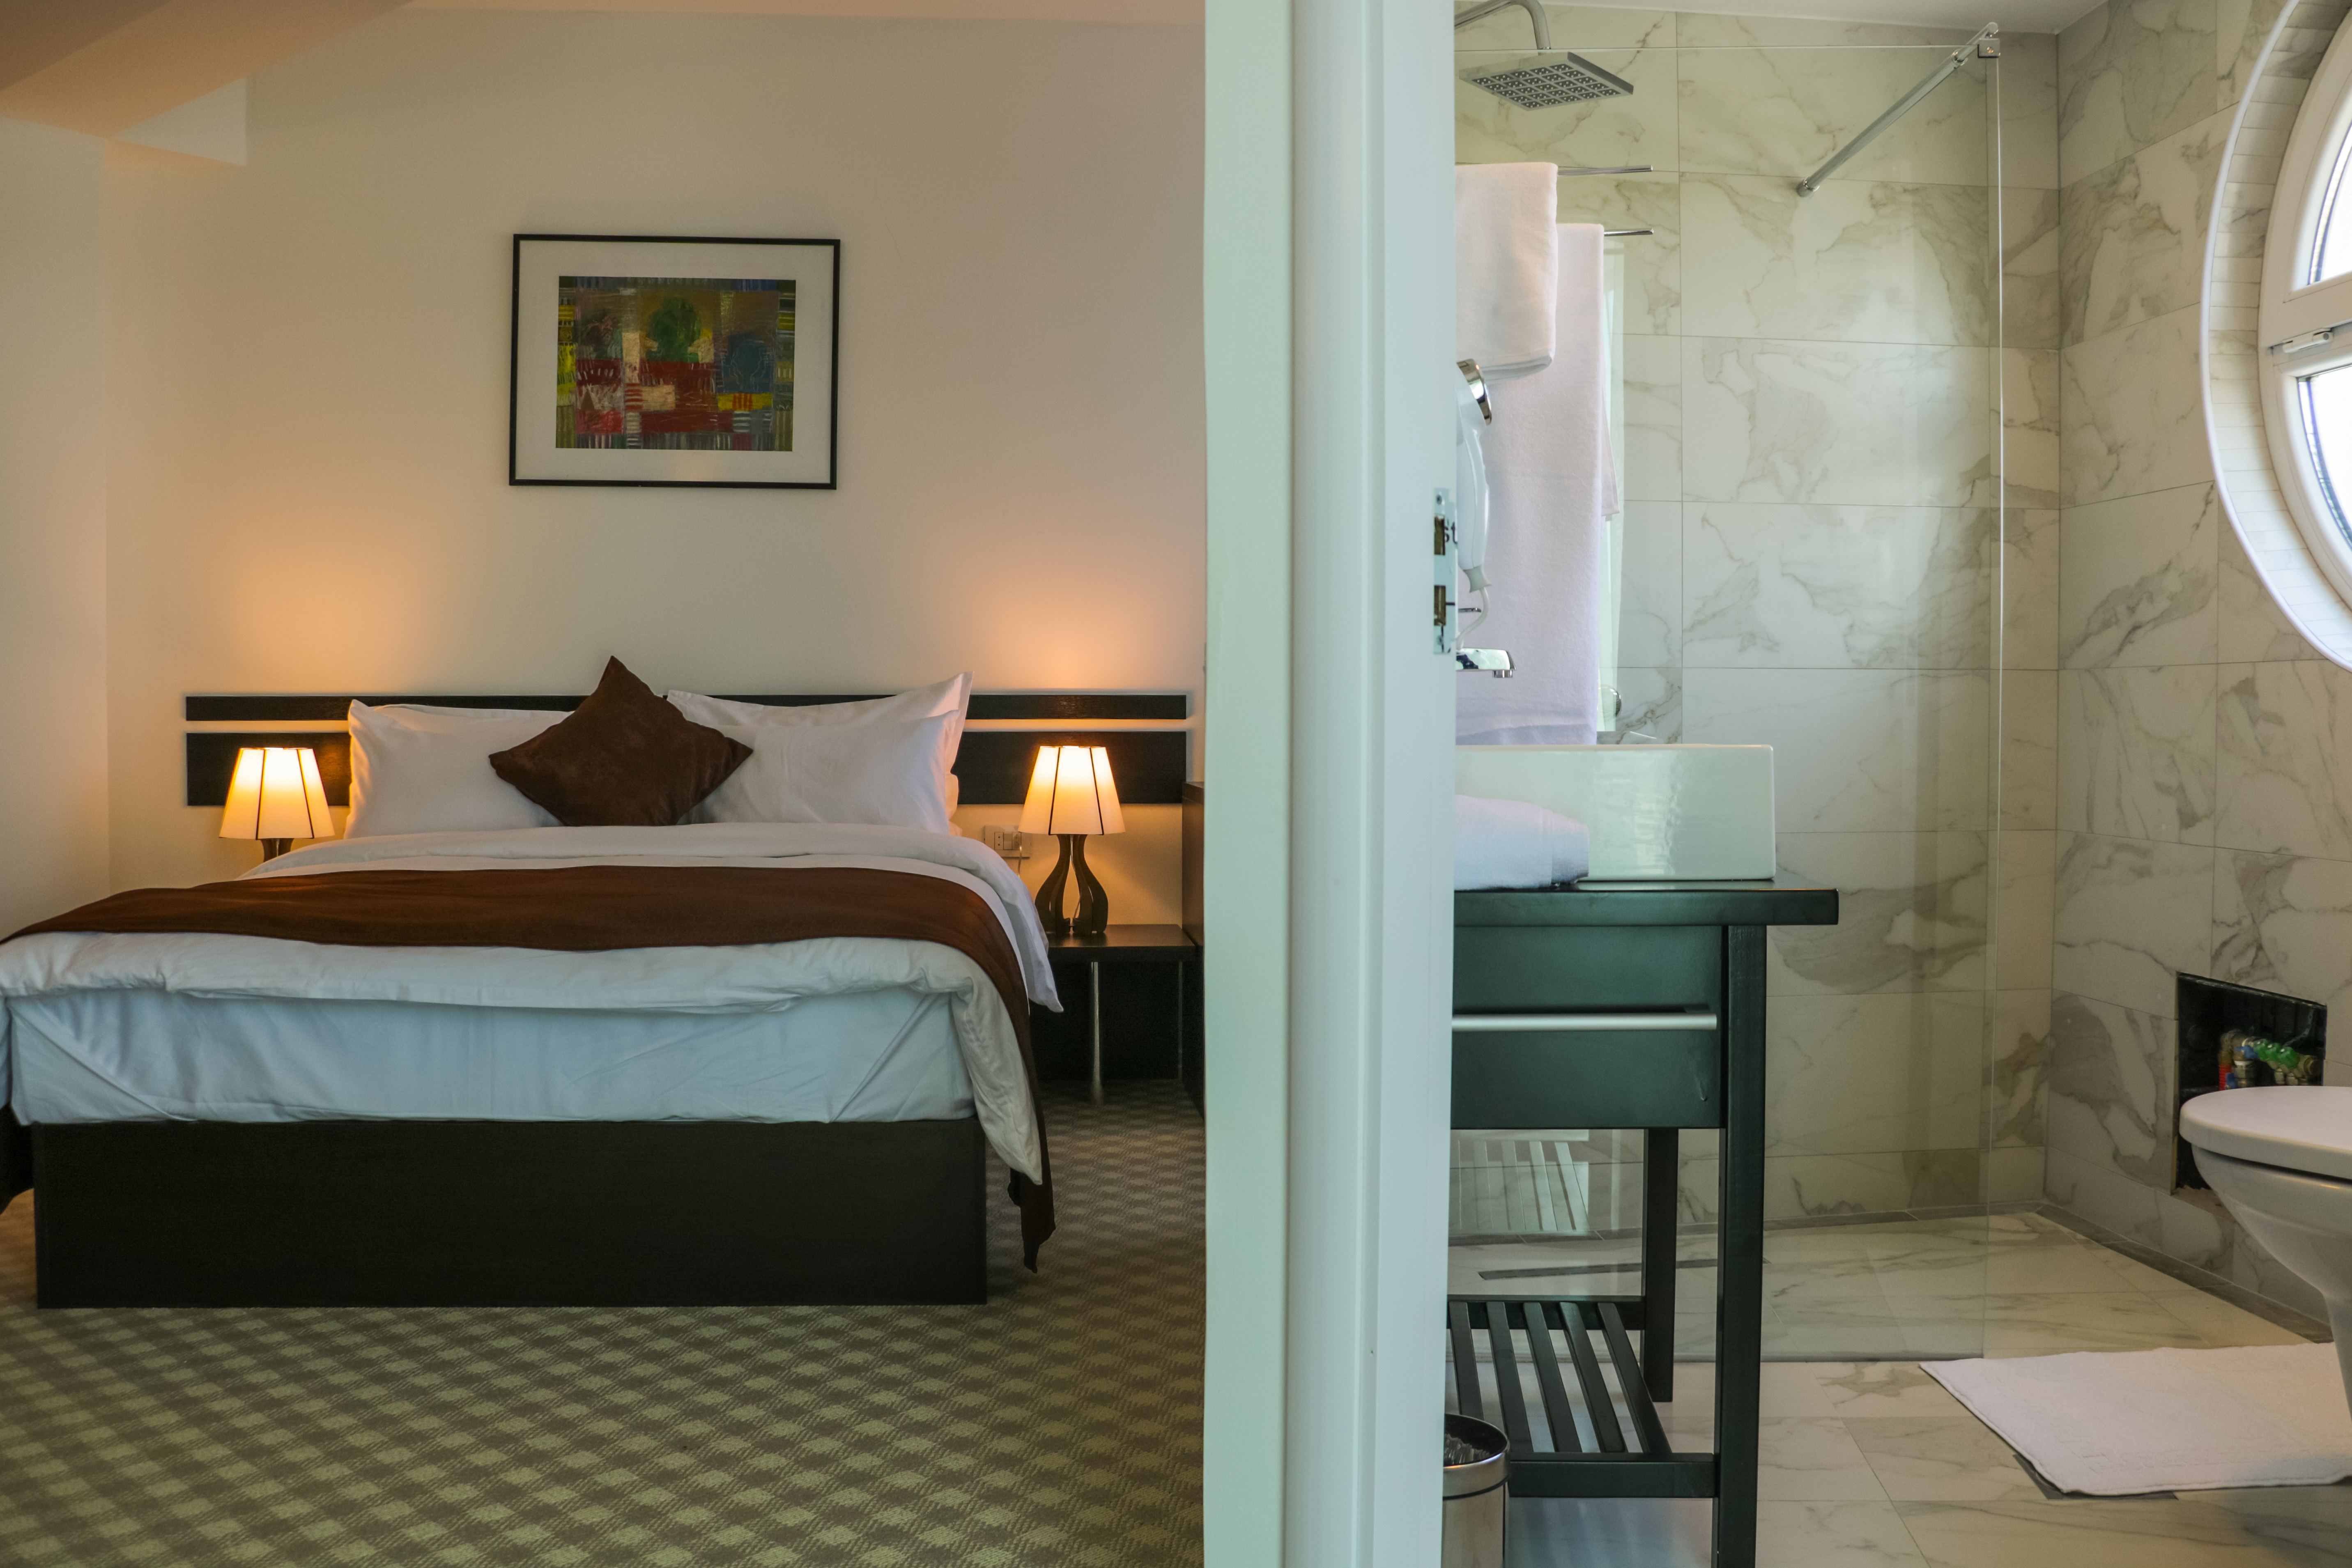 30-Double Room with Queen Bed